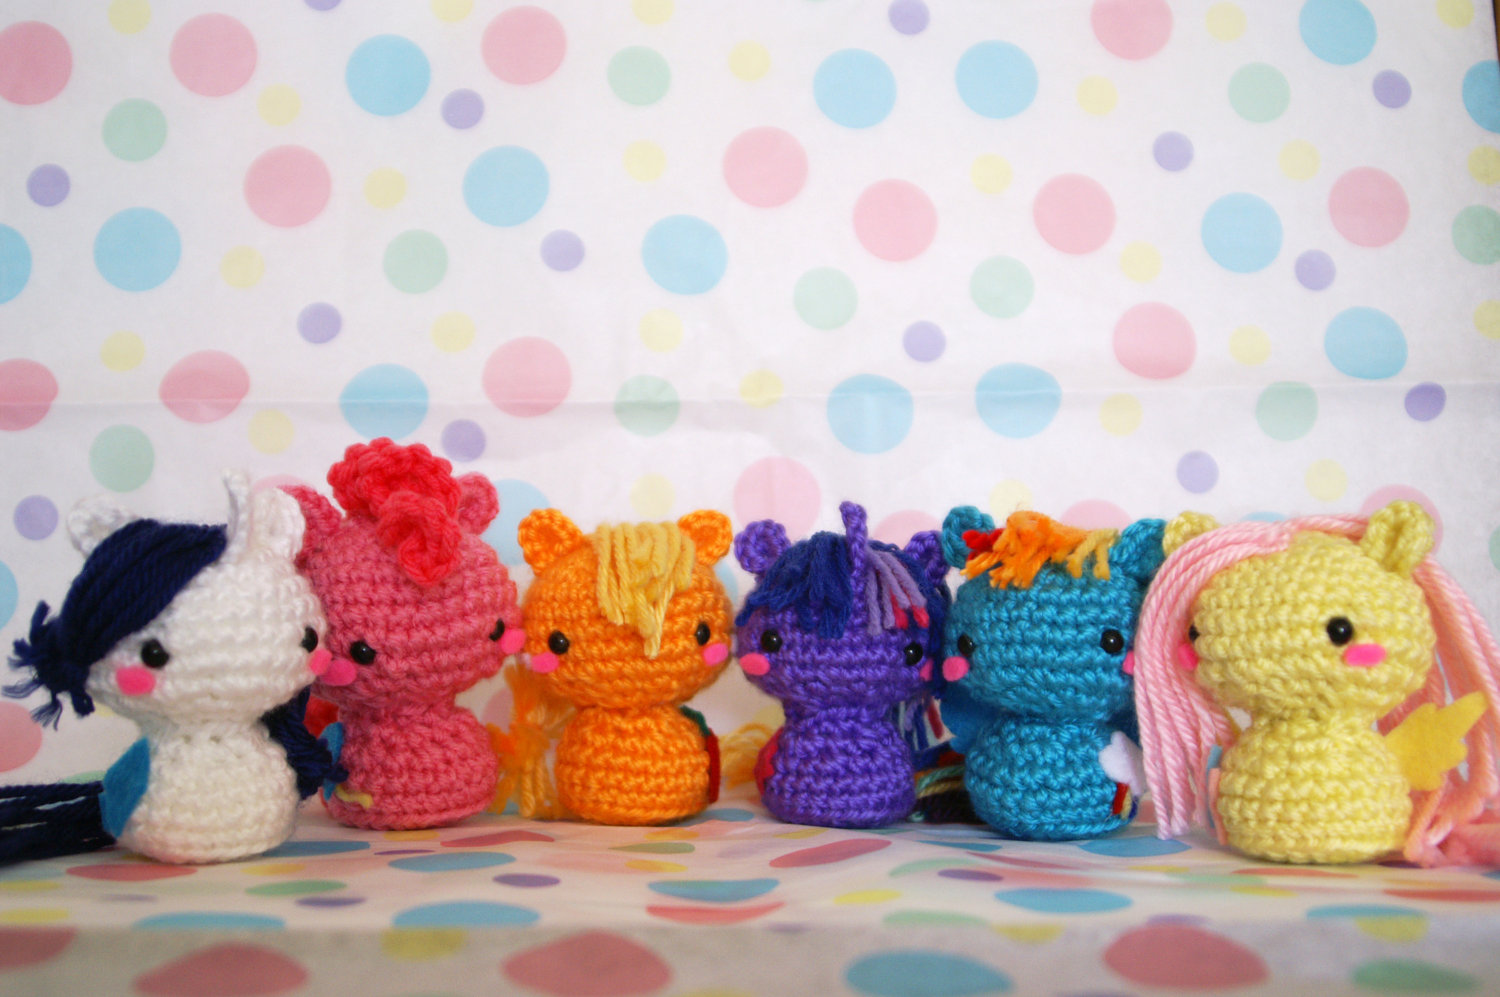 All Crochet My Little Pony Characters Amigurumi Toy On Storenvy